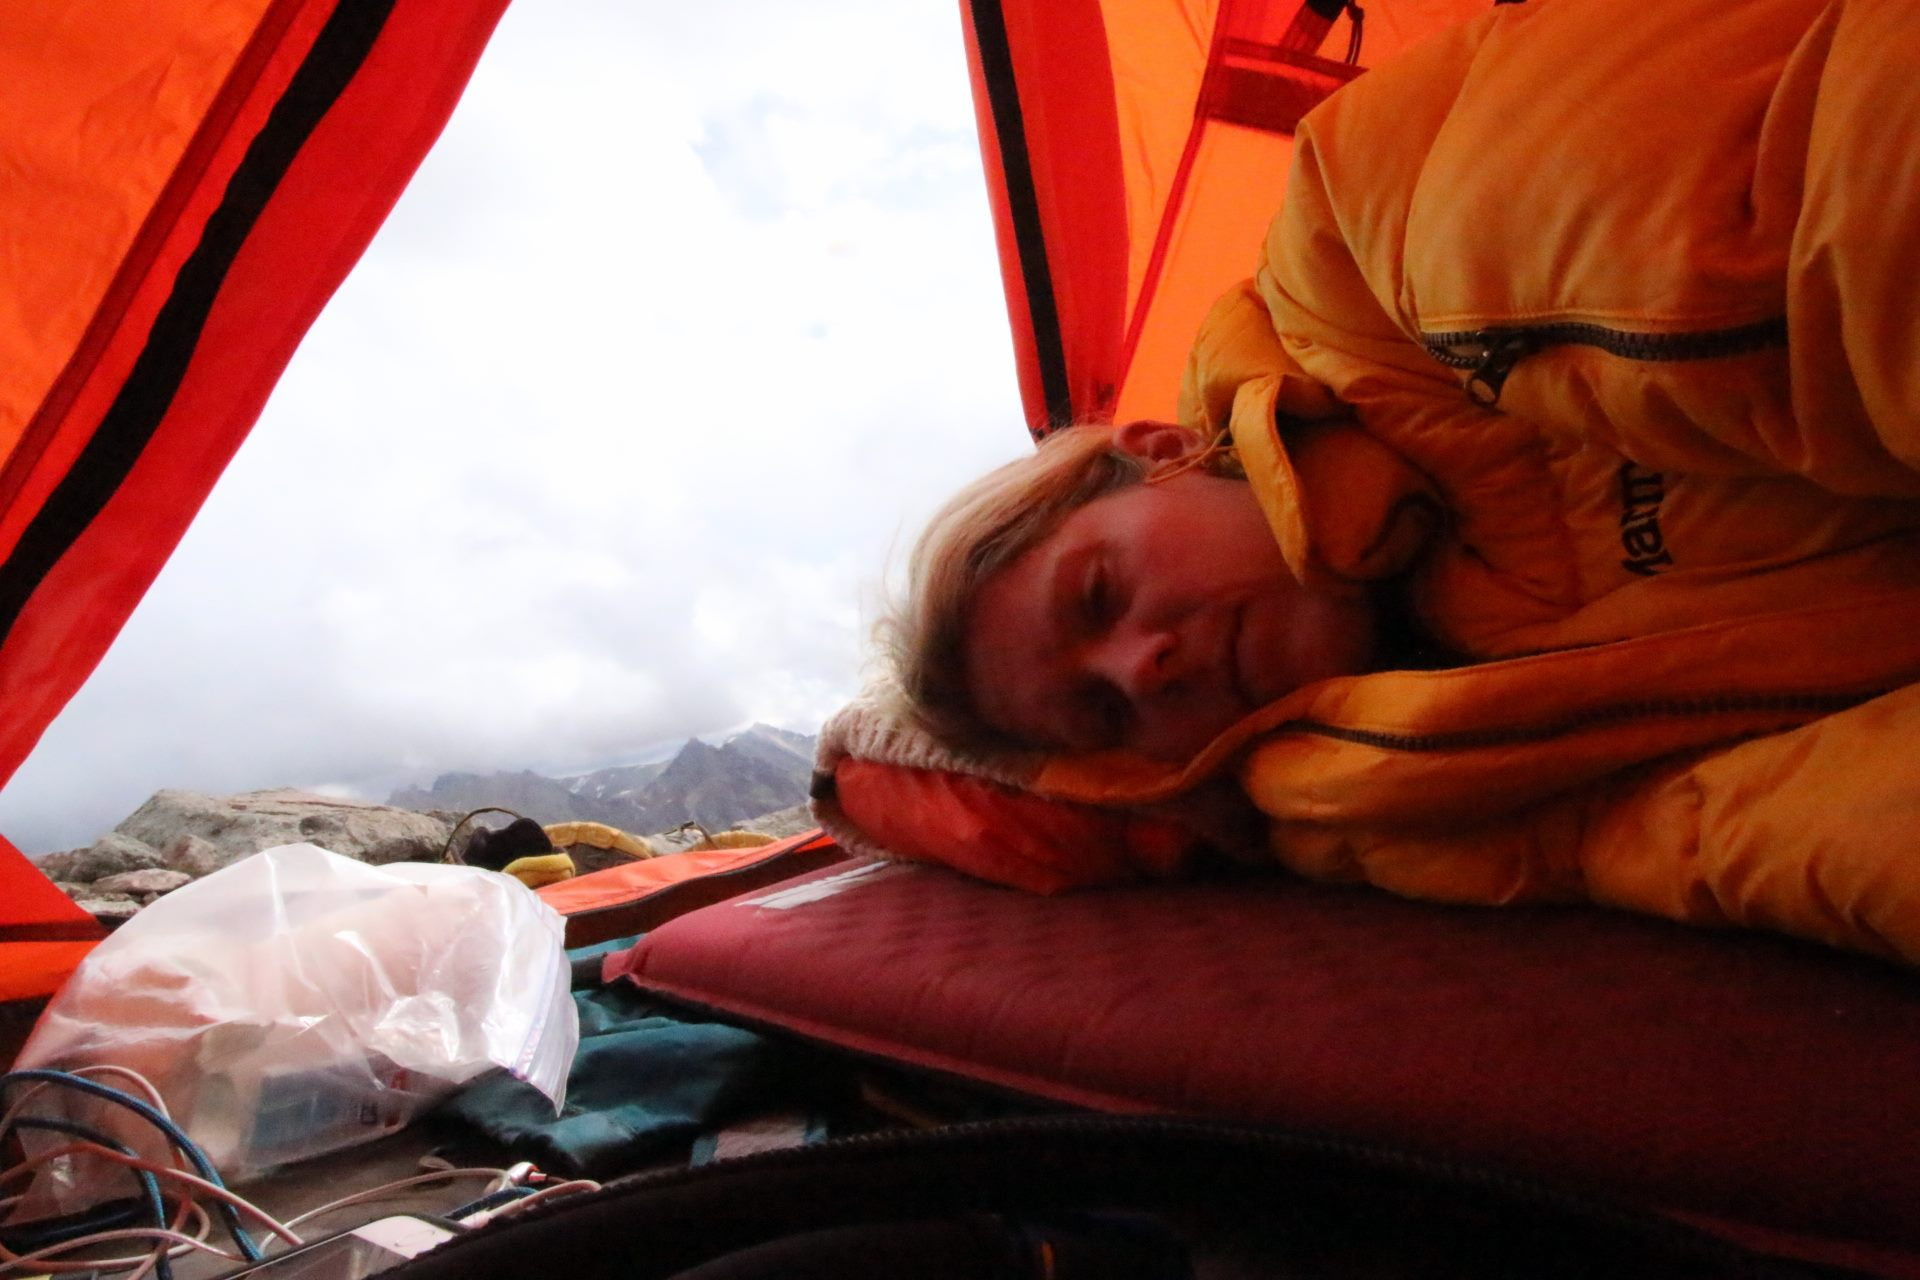 Did I mention there'll be suffering? I was definitely suffering here... sick from bad water at Camp II in 2014